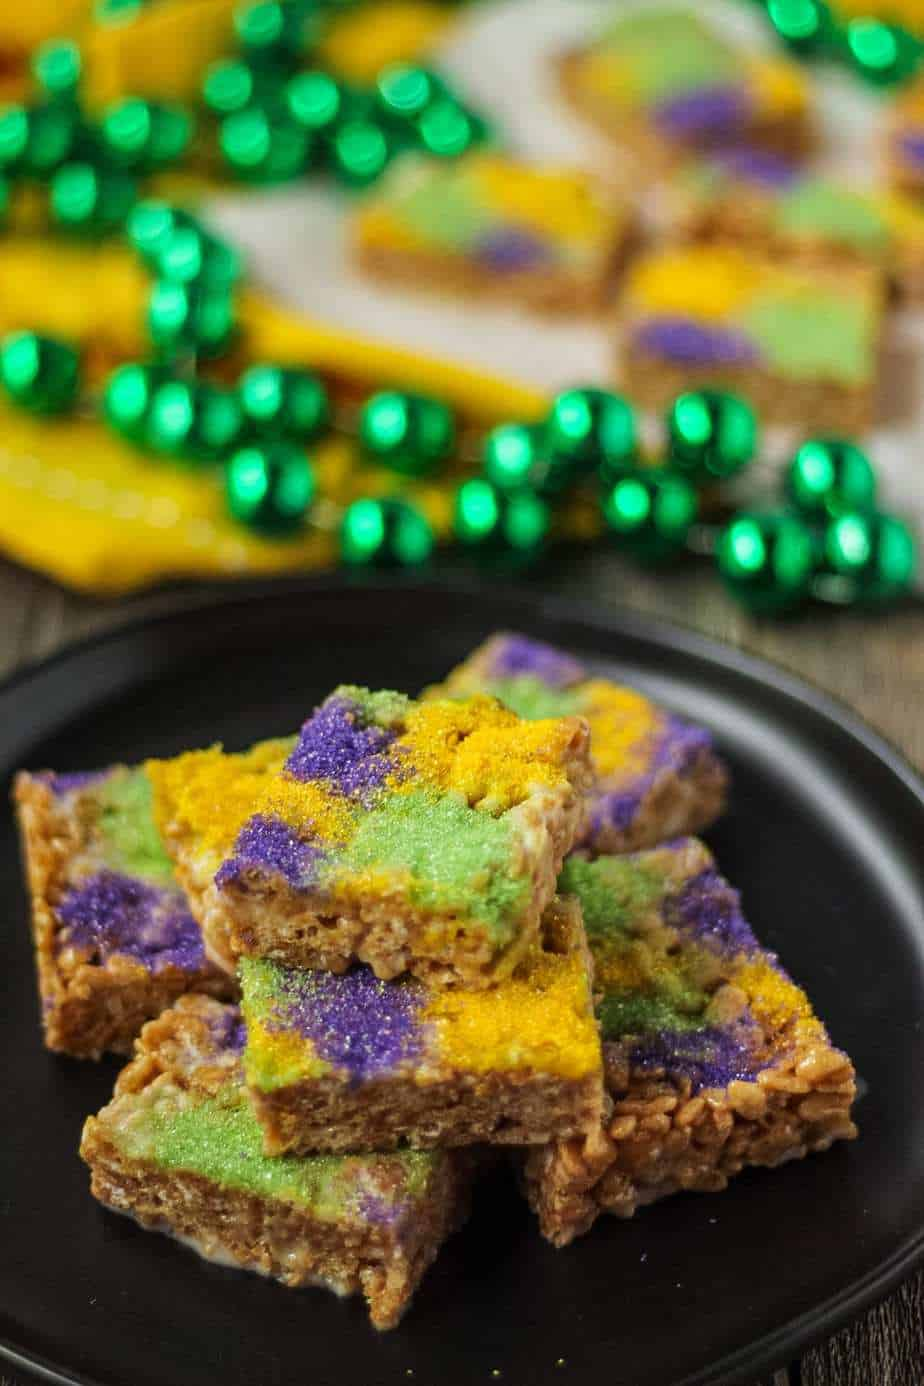 side shot of rice krispy treats made with marshmallows, butter, cinnamon and brown sugar topped with green, yellow and purple sanding sugar. treats are on a black plate and there are mardi gras beads in the background of the shot